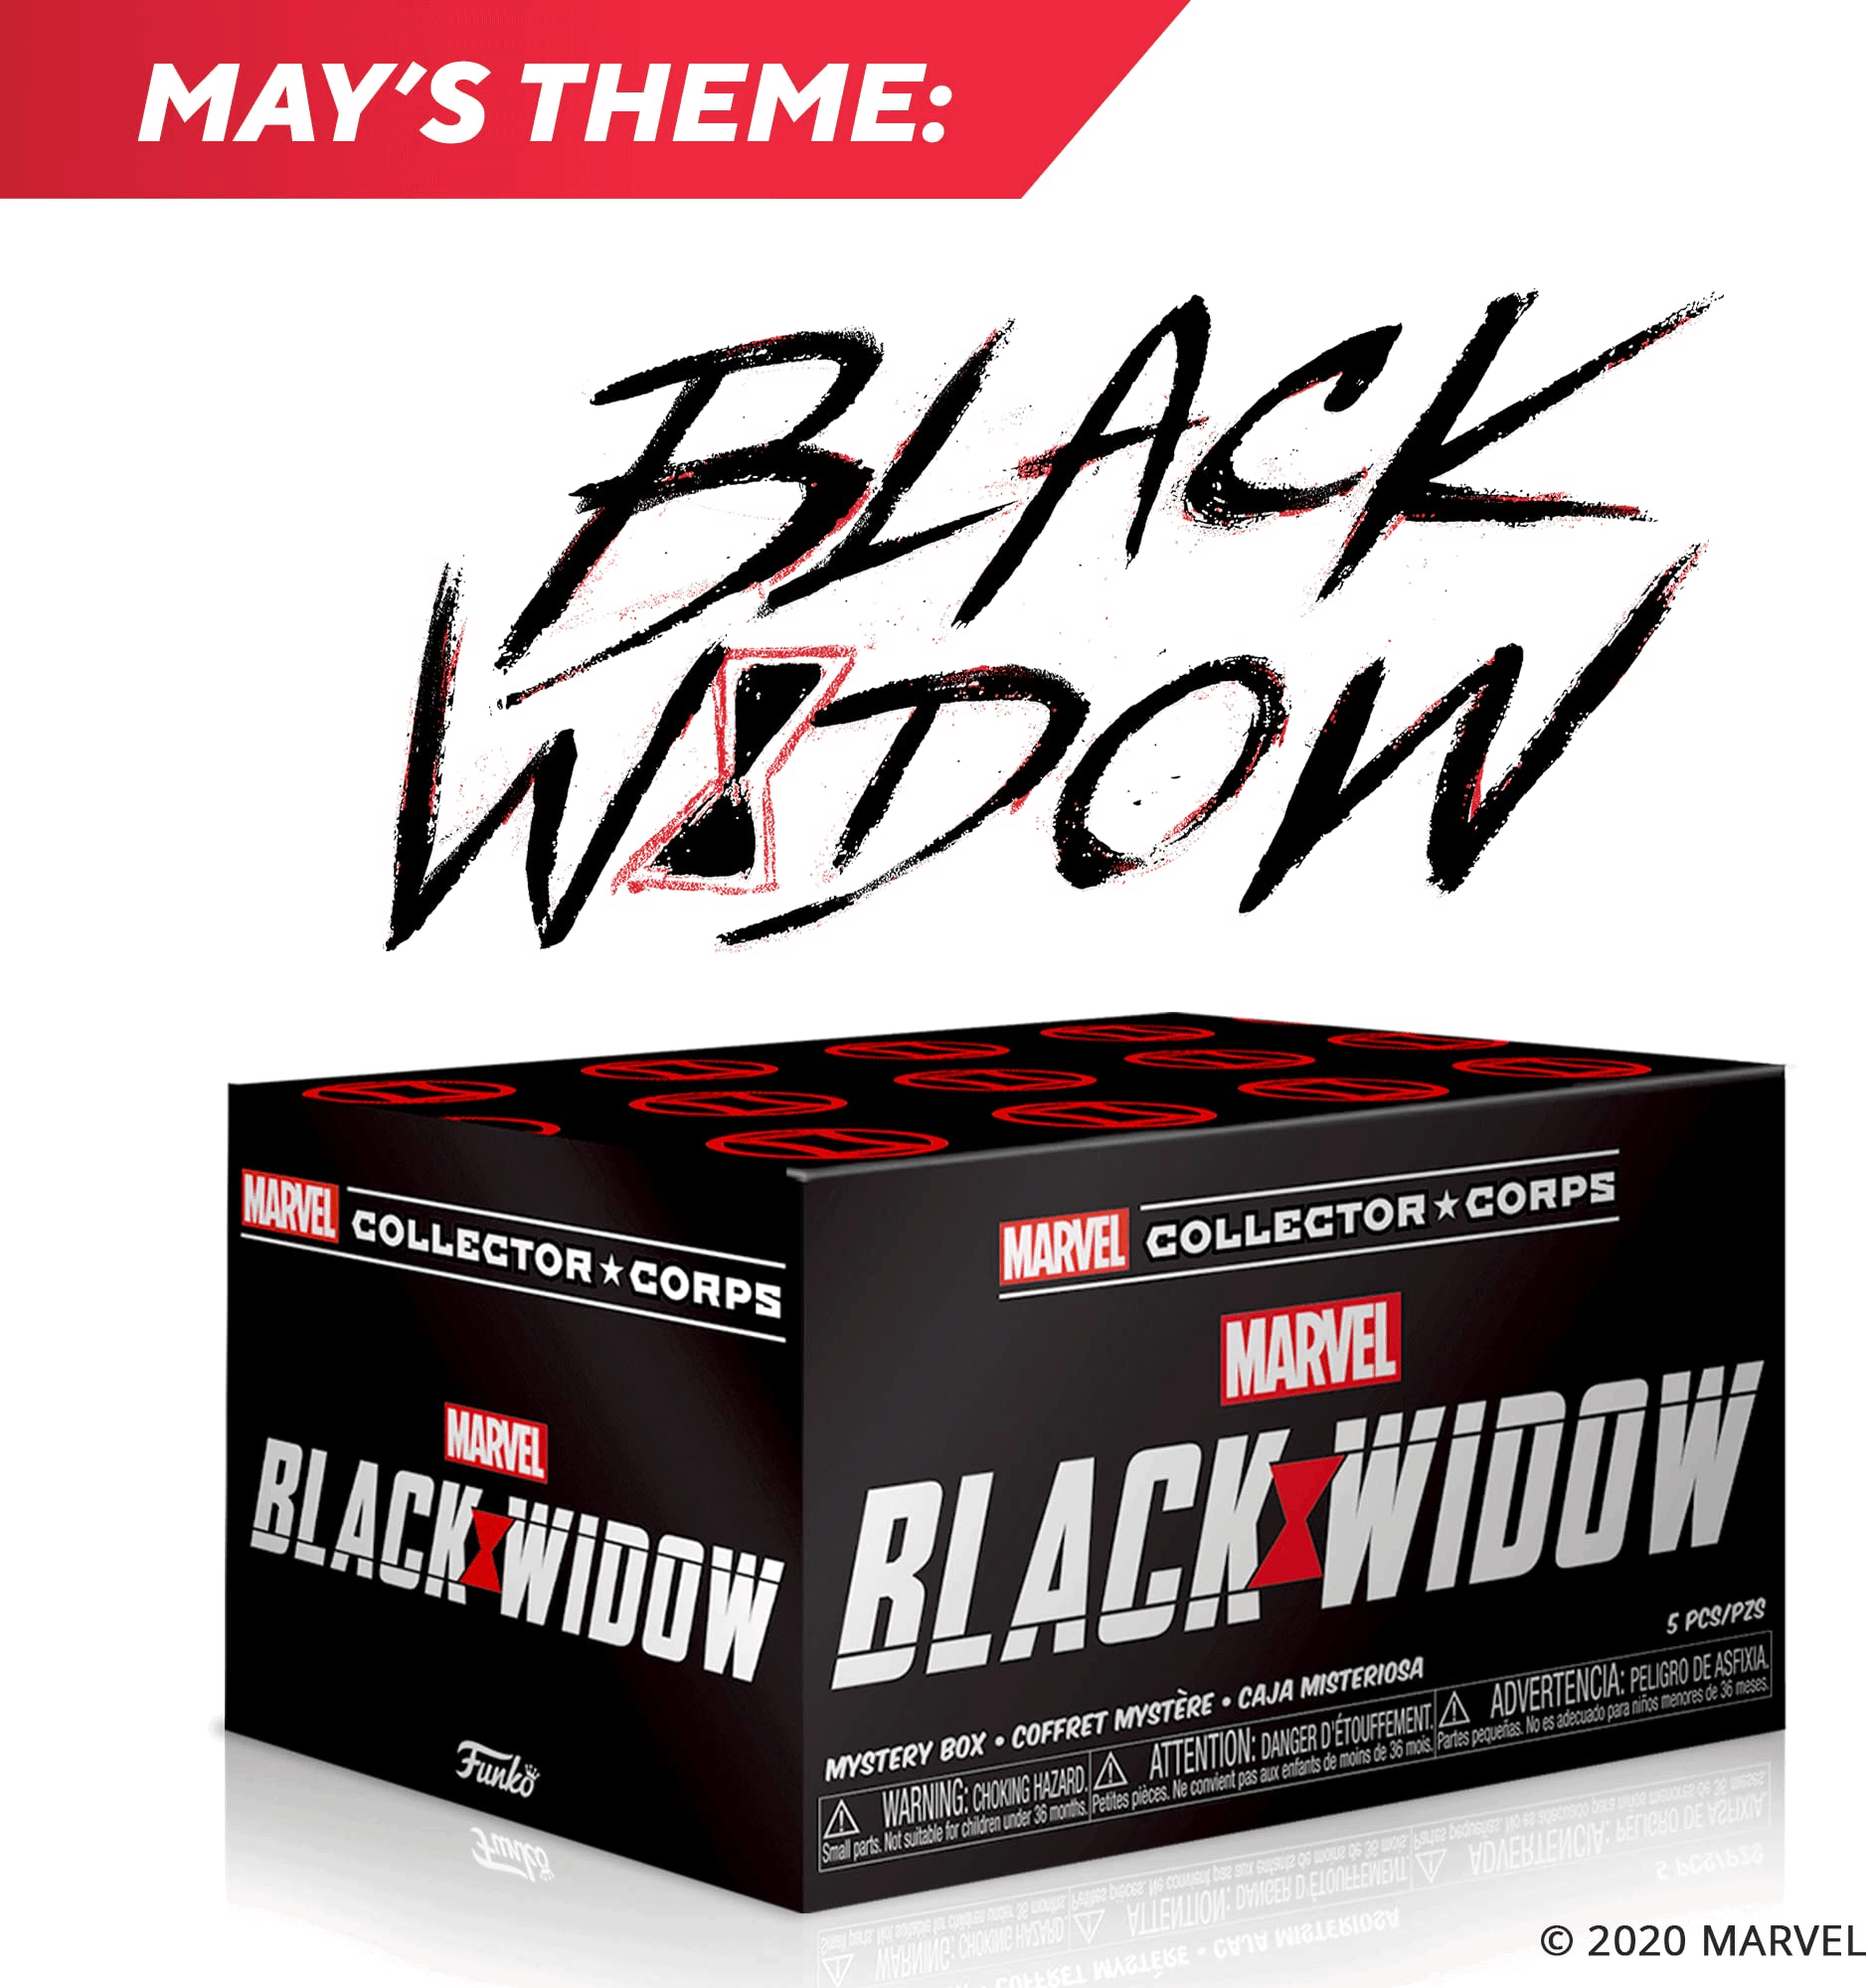 Marvel Collector Corps May 2020 Theme Spoilers!